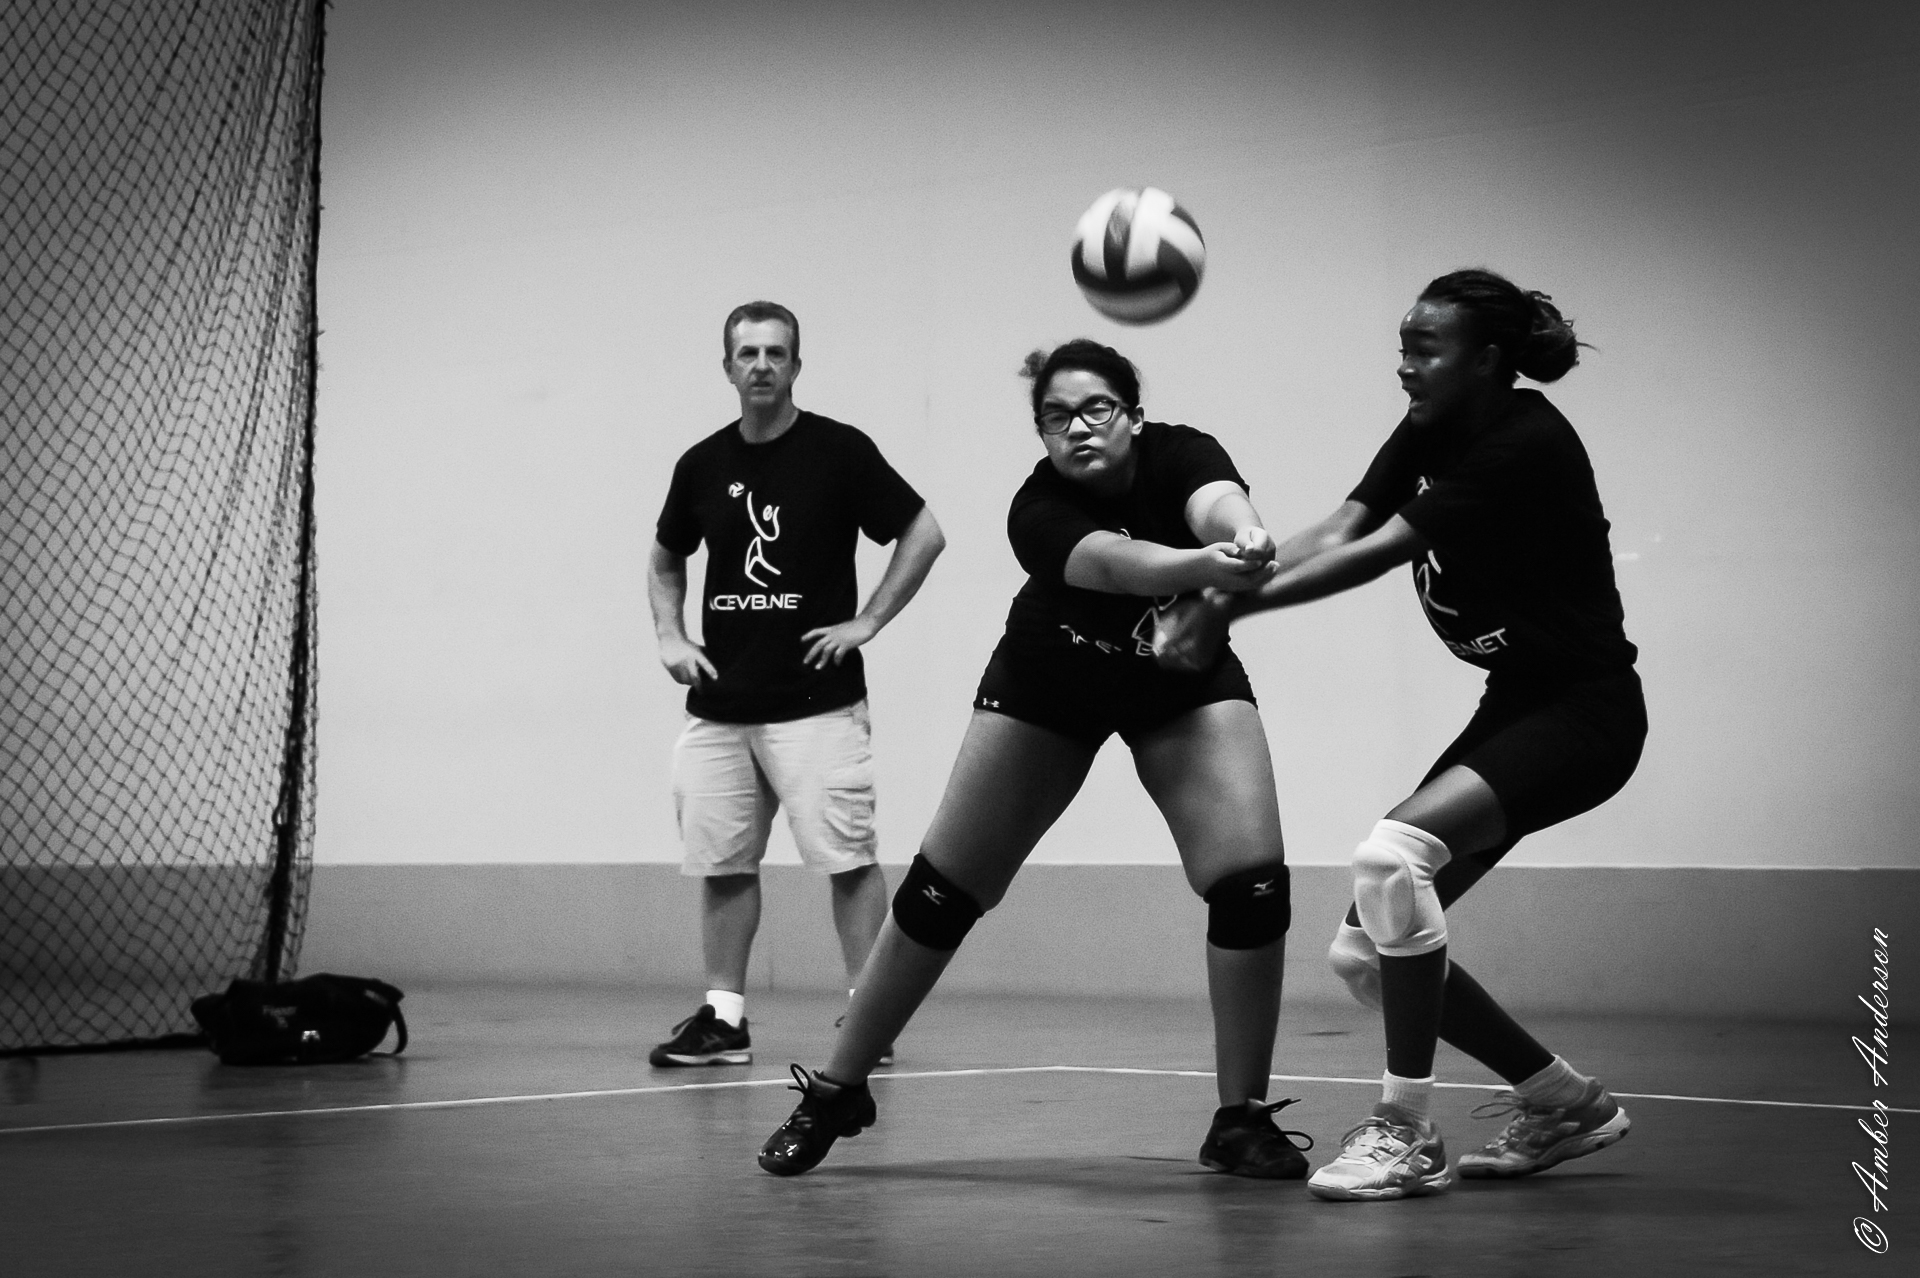 I DIG it!! Get it.  Daja Jackson takin' a hit at Aspire Volleyball Club in Phoenix, AZ.